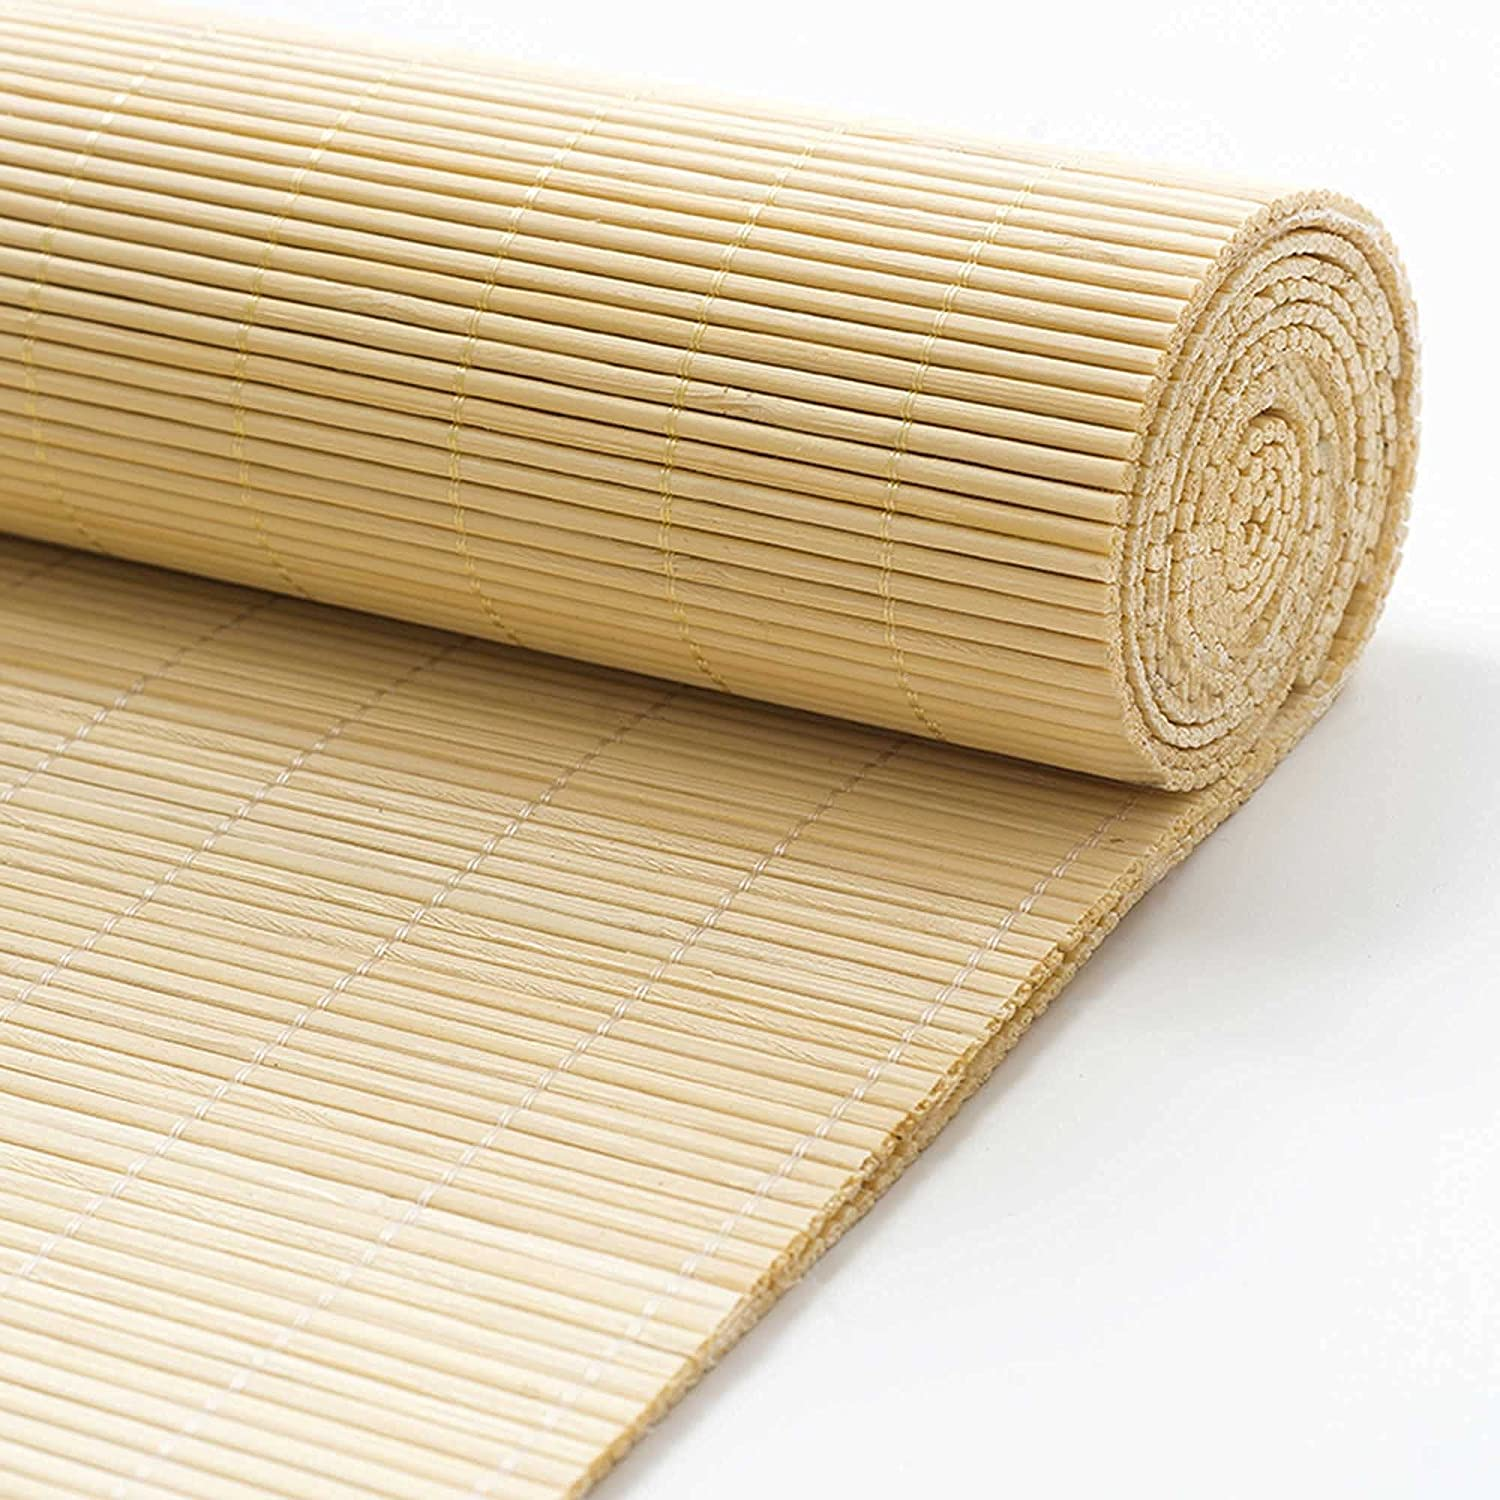 YANSW Reed Curtain Inventory cleanup selling sale Bamboo Al sold out. Blinds Curtains S Roller